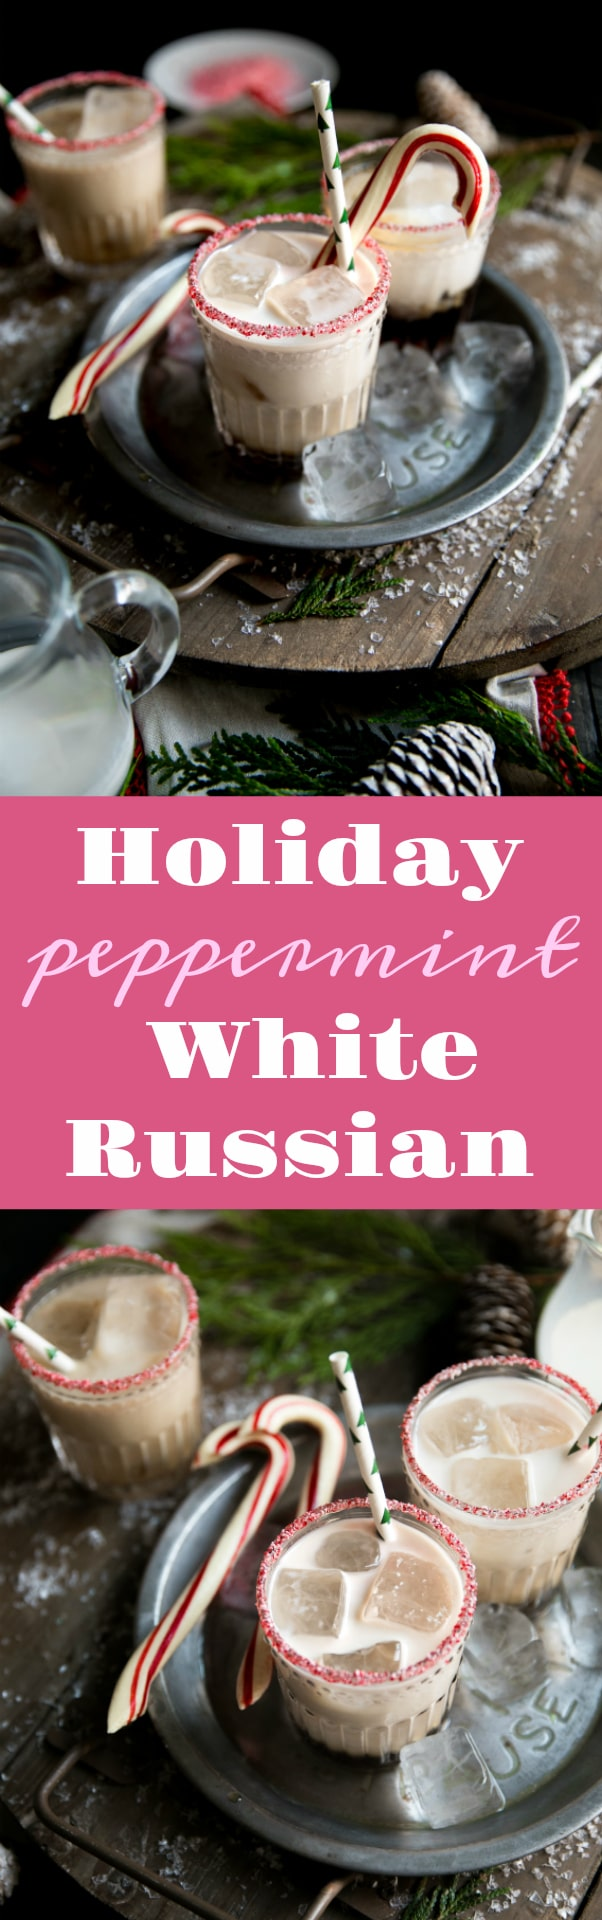 Holiday Peppermint White Russian. Made with Kahlúa, Peppermint Schnapps, and Vodka, this delicious cocktail is perfect for the cold holiday season via @theforkedspoon #whiterussian #cocktail #holidaydrinks #christmas #vodka #kahlue #coffee